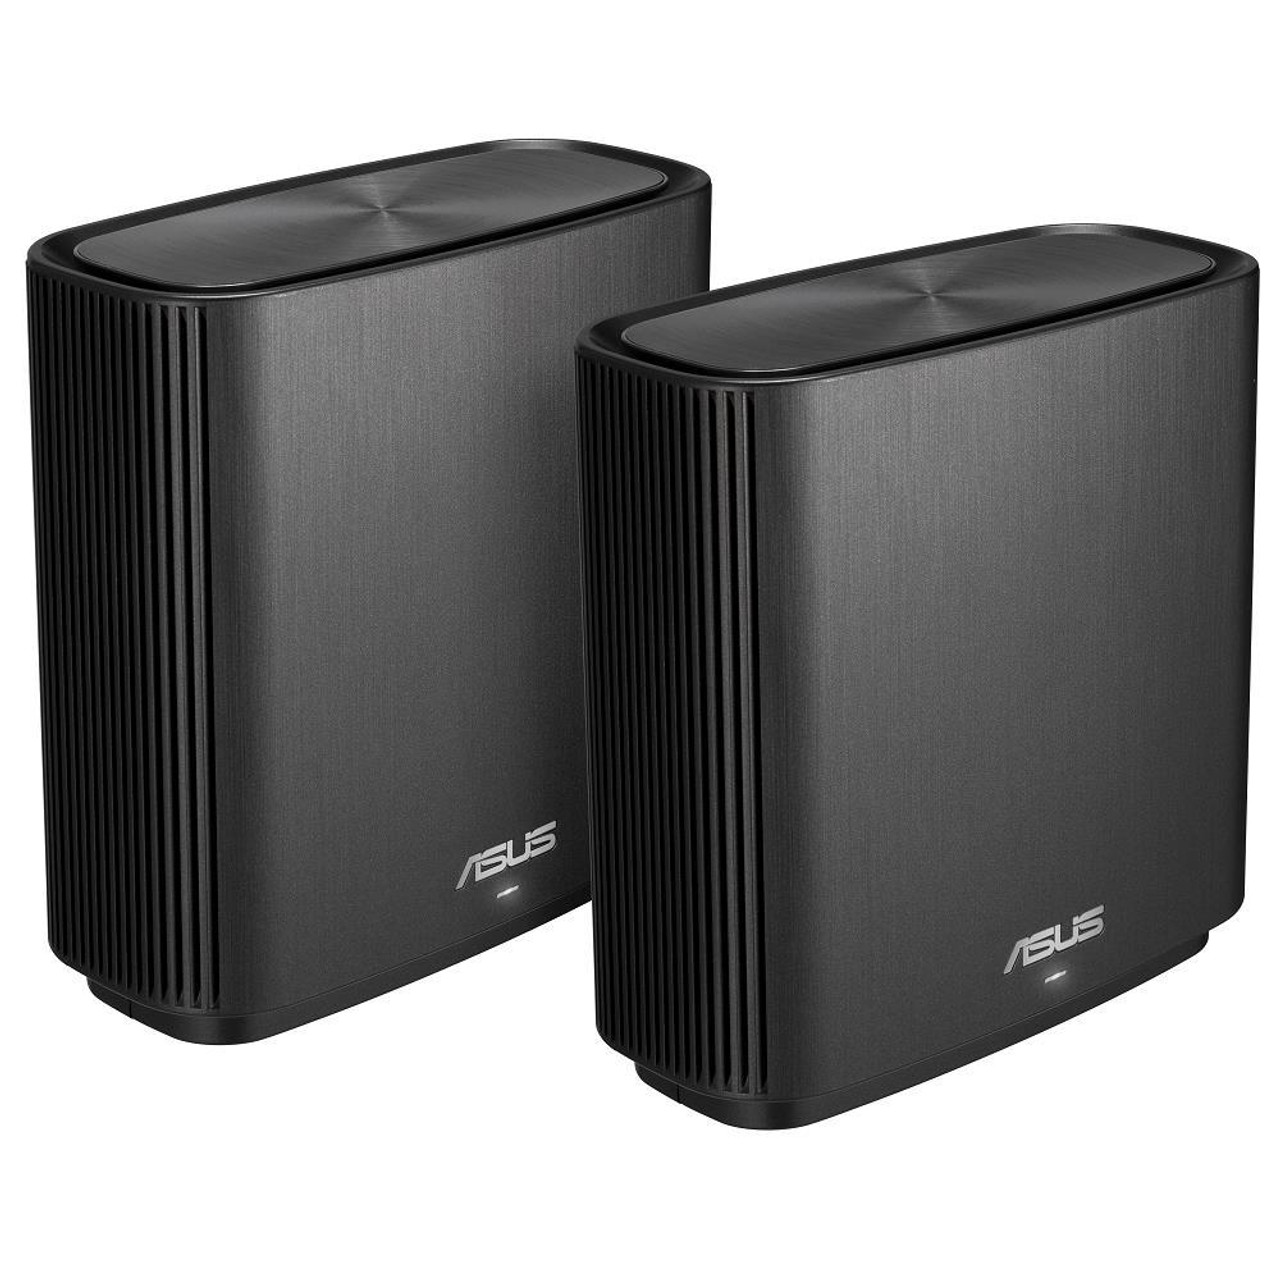 Image for Asus CT8 AC3000 ZenWiFi AC Tri Band Mesh WiFi Gigabit System - 2 Pack CX Computer Superstore